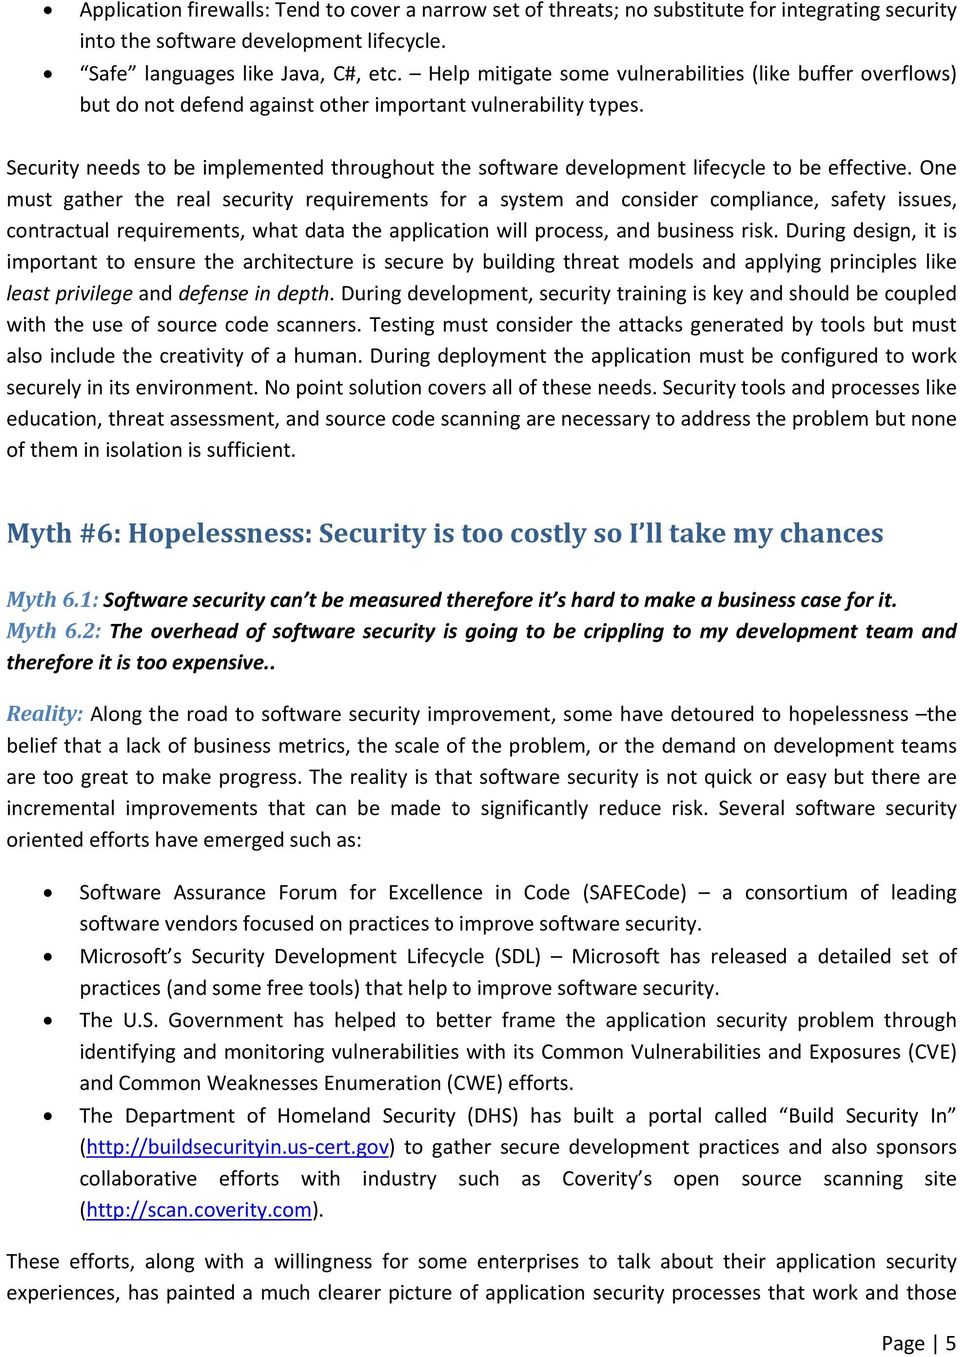 Security needs to be implemented throughout the software development lifecycle to be effective.